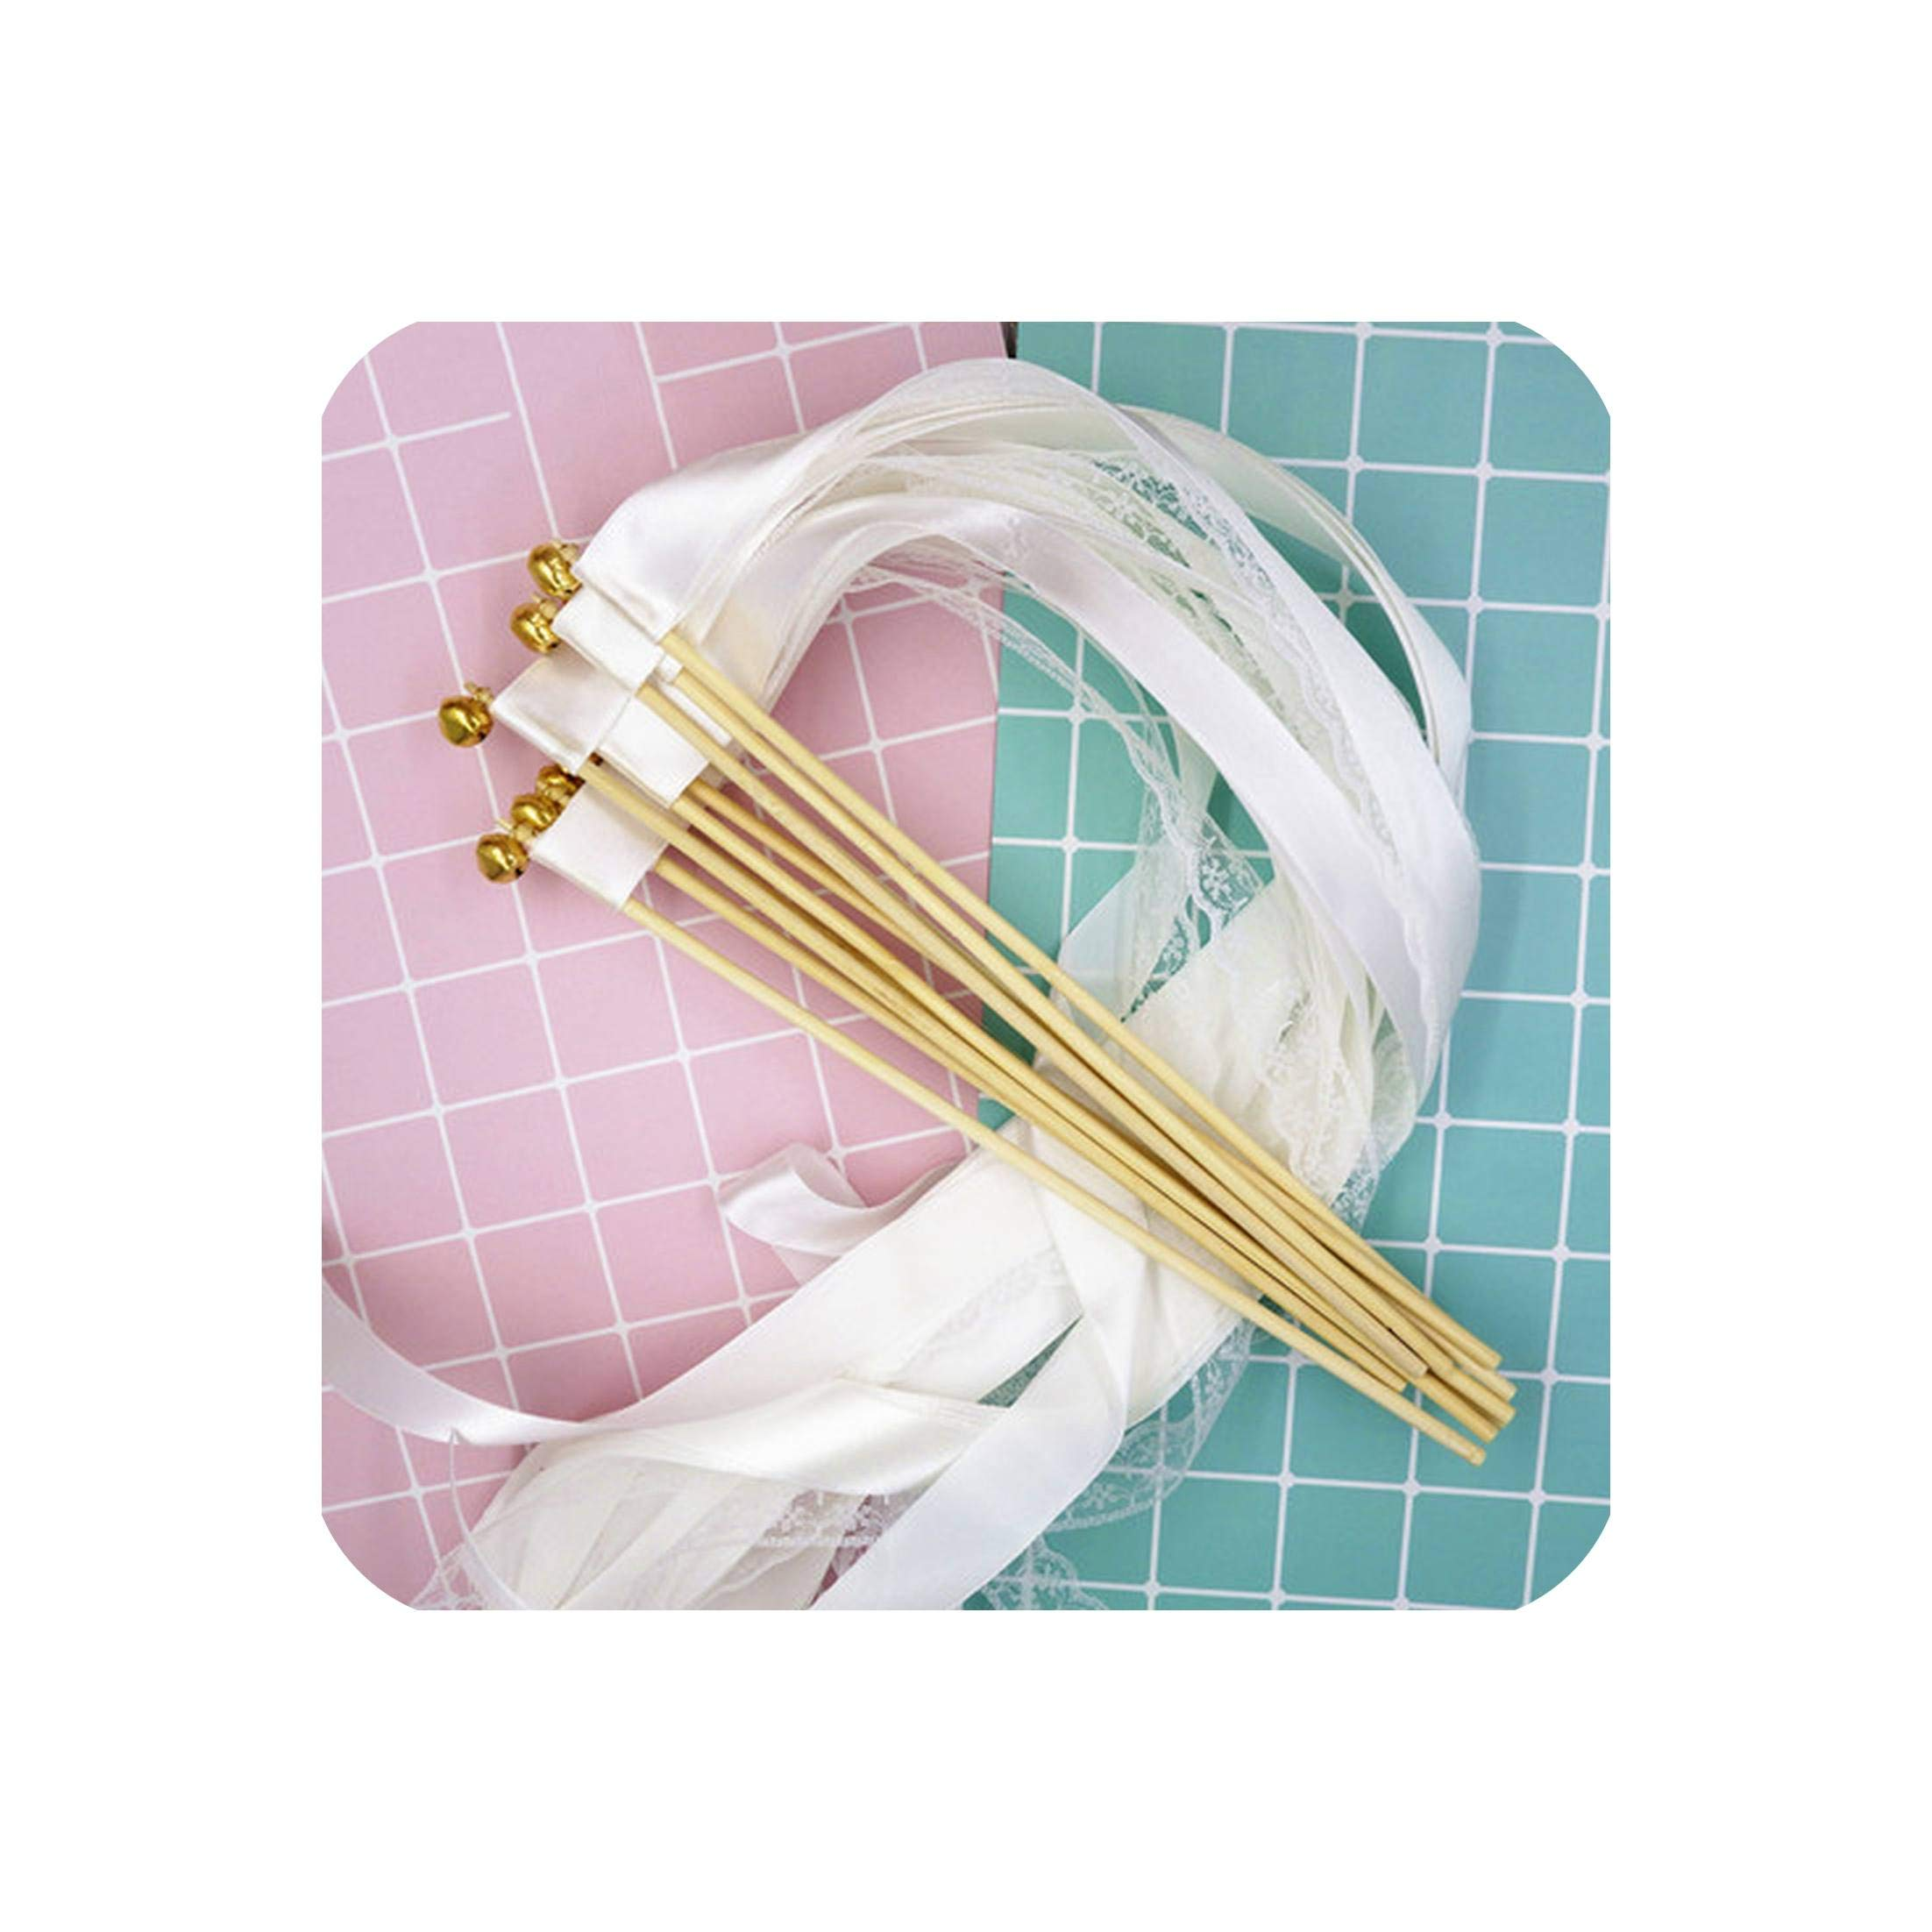 50Pcs White Lace Ribbon Wands Wedding Twirling Streamers Wedding Ribbon Stick Streamers Stick With Bell Send Off Bell Wands,White Ribbon Lace,No Bell